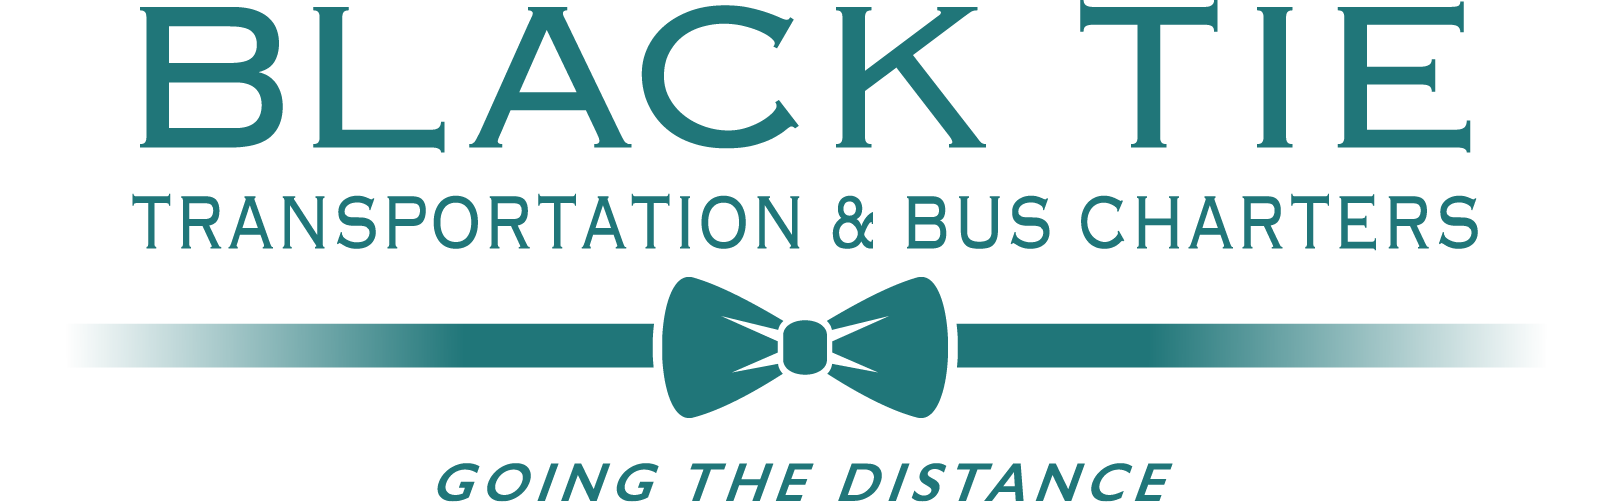 Black Tie Transportation logo